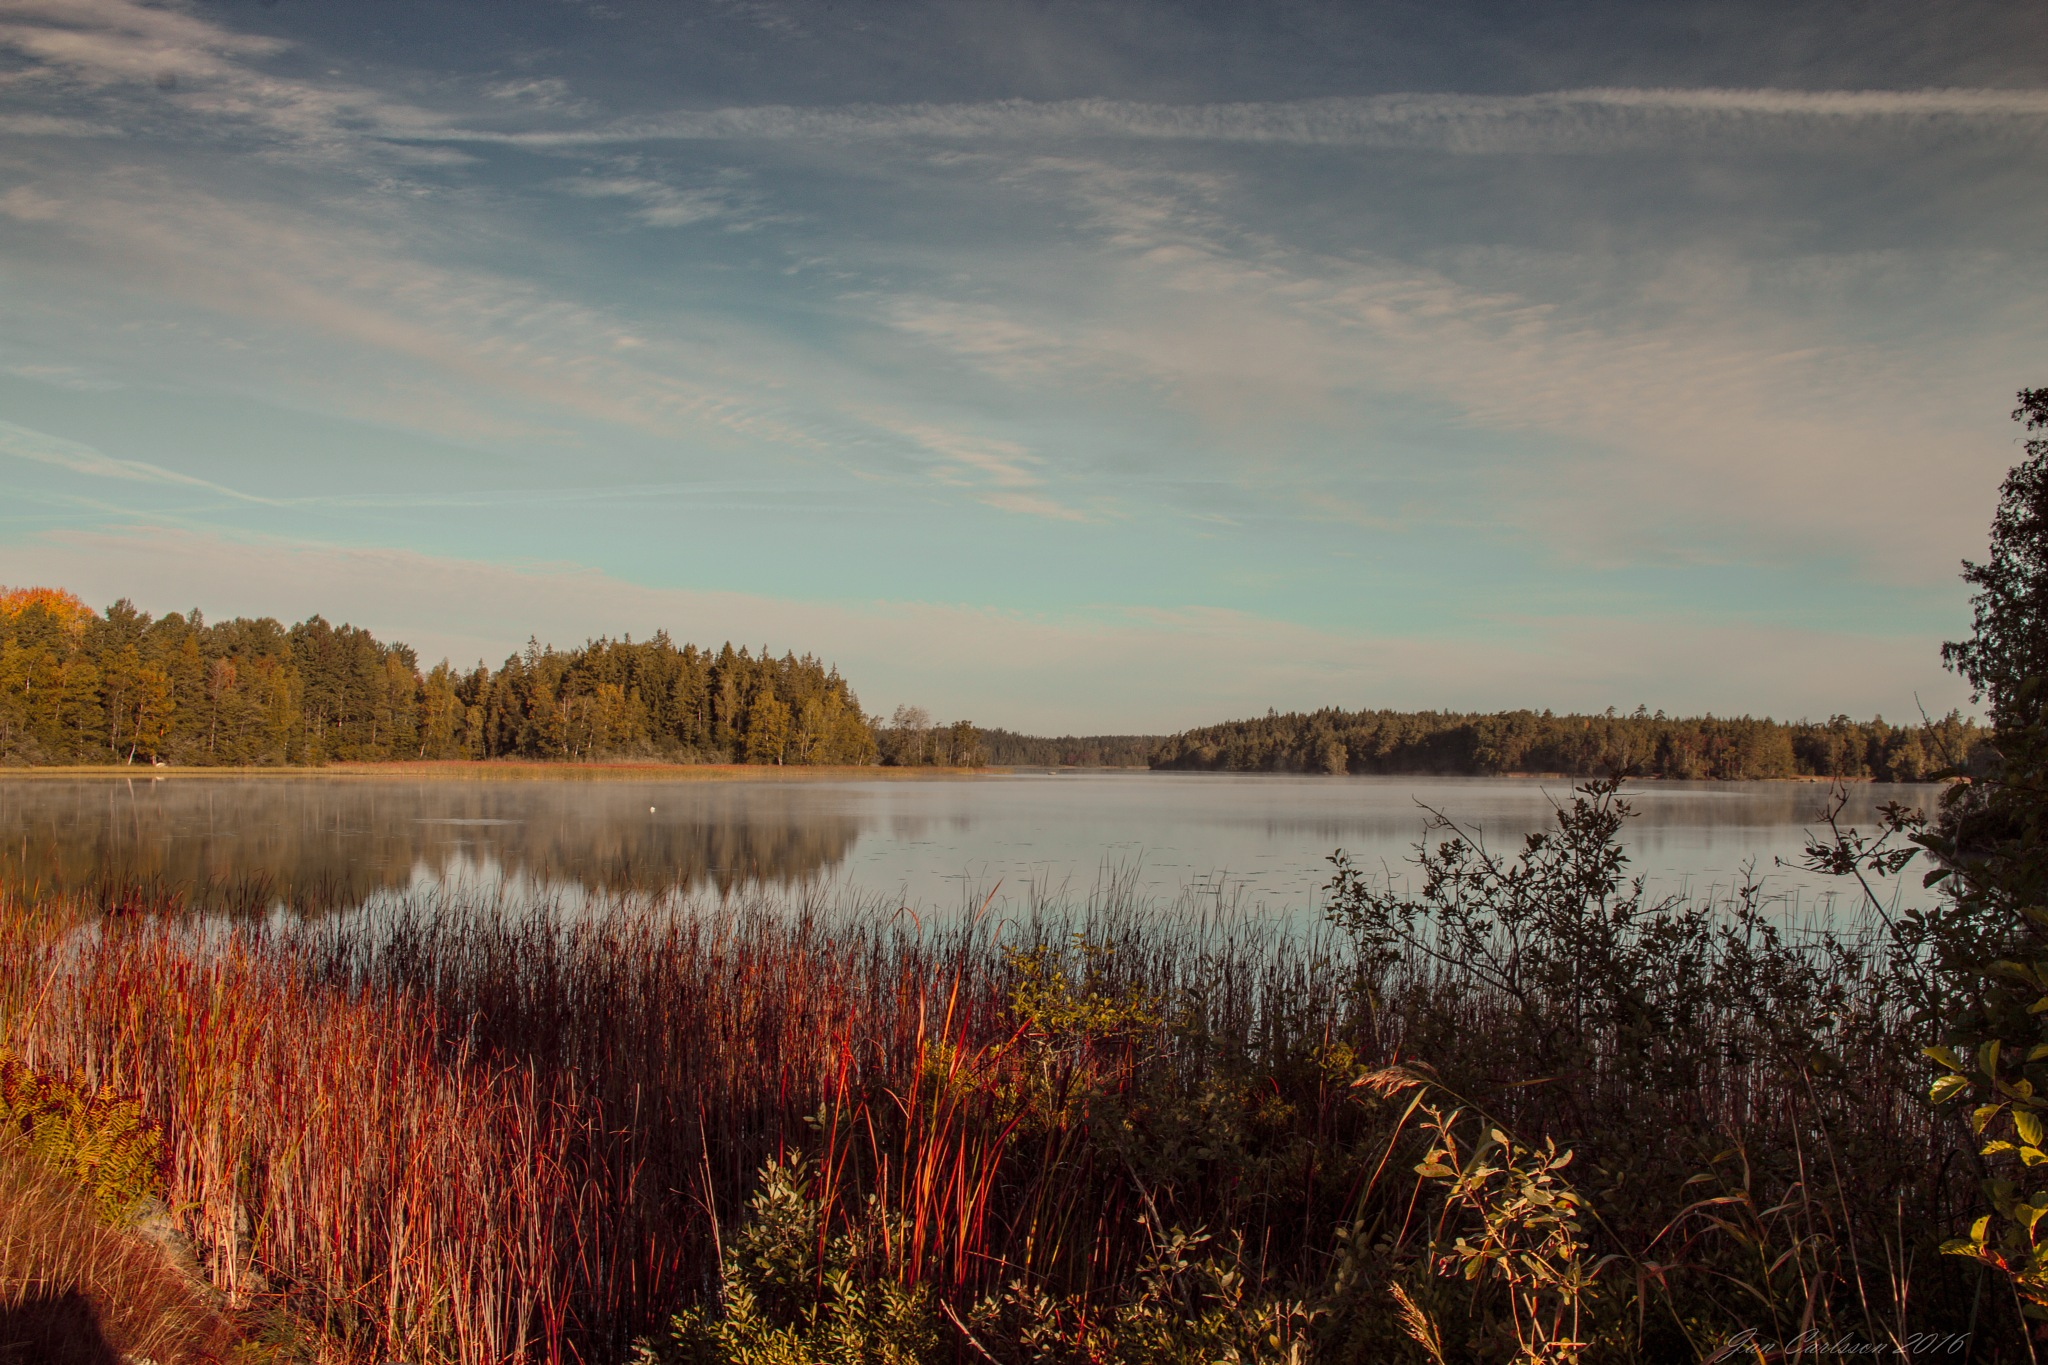 Morning at the Lake 3 by carljan w carlsson